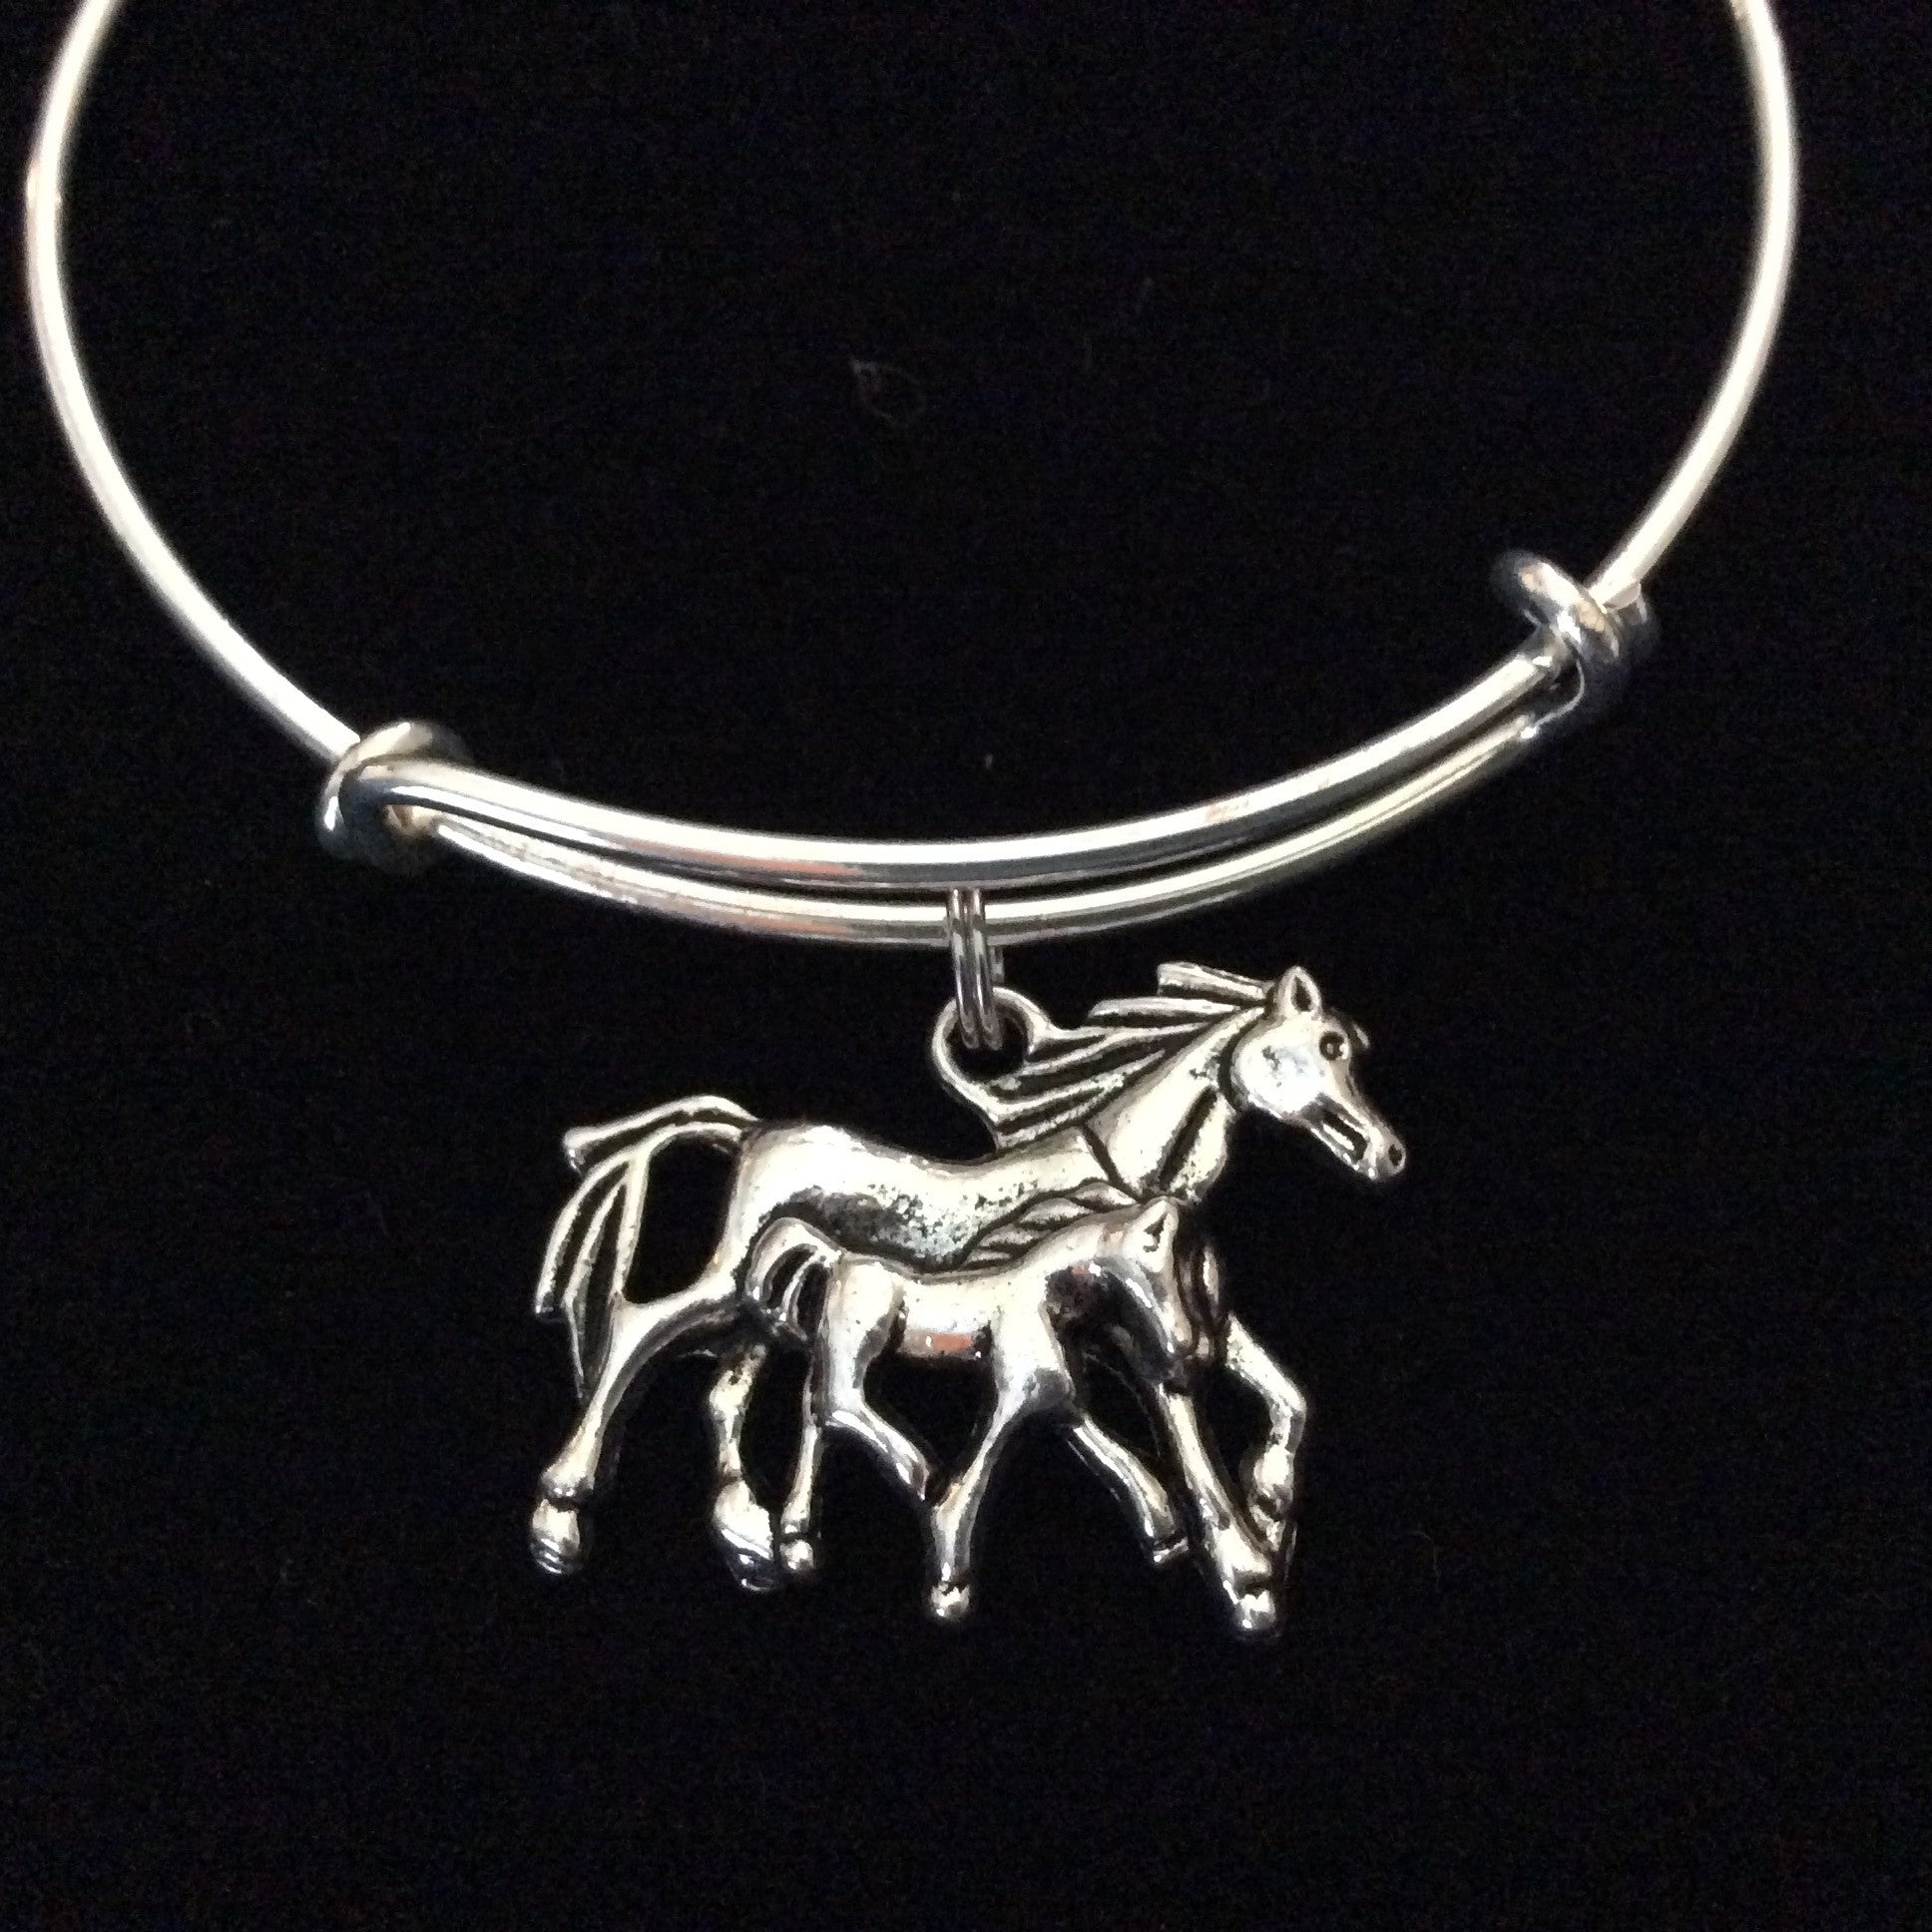 mother and baby horse charm bracelet expandable adjustable silver